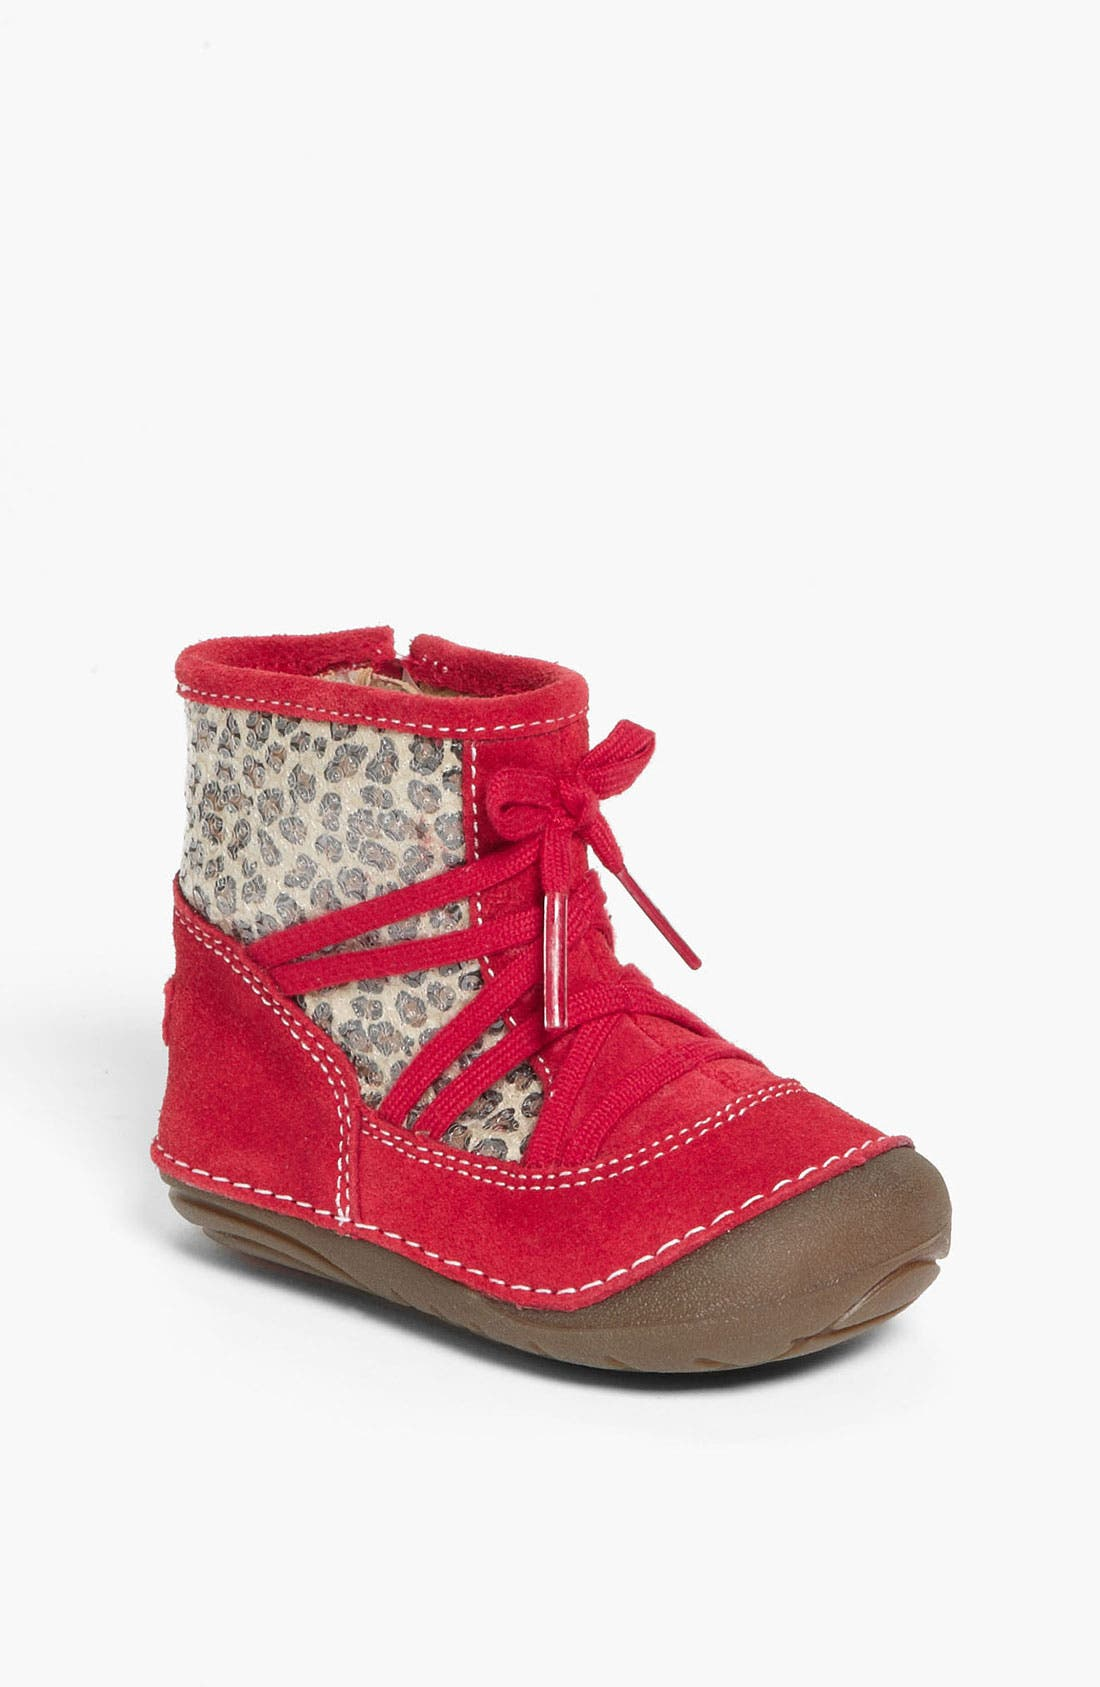 Alternate Image 1 Selected - Stride Rite 'Holly' Boot (Baby & Walker)